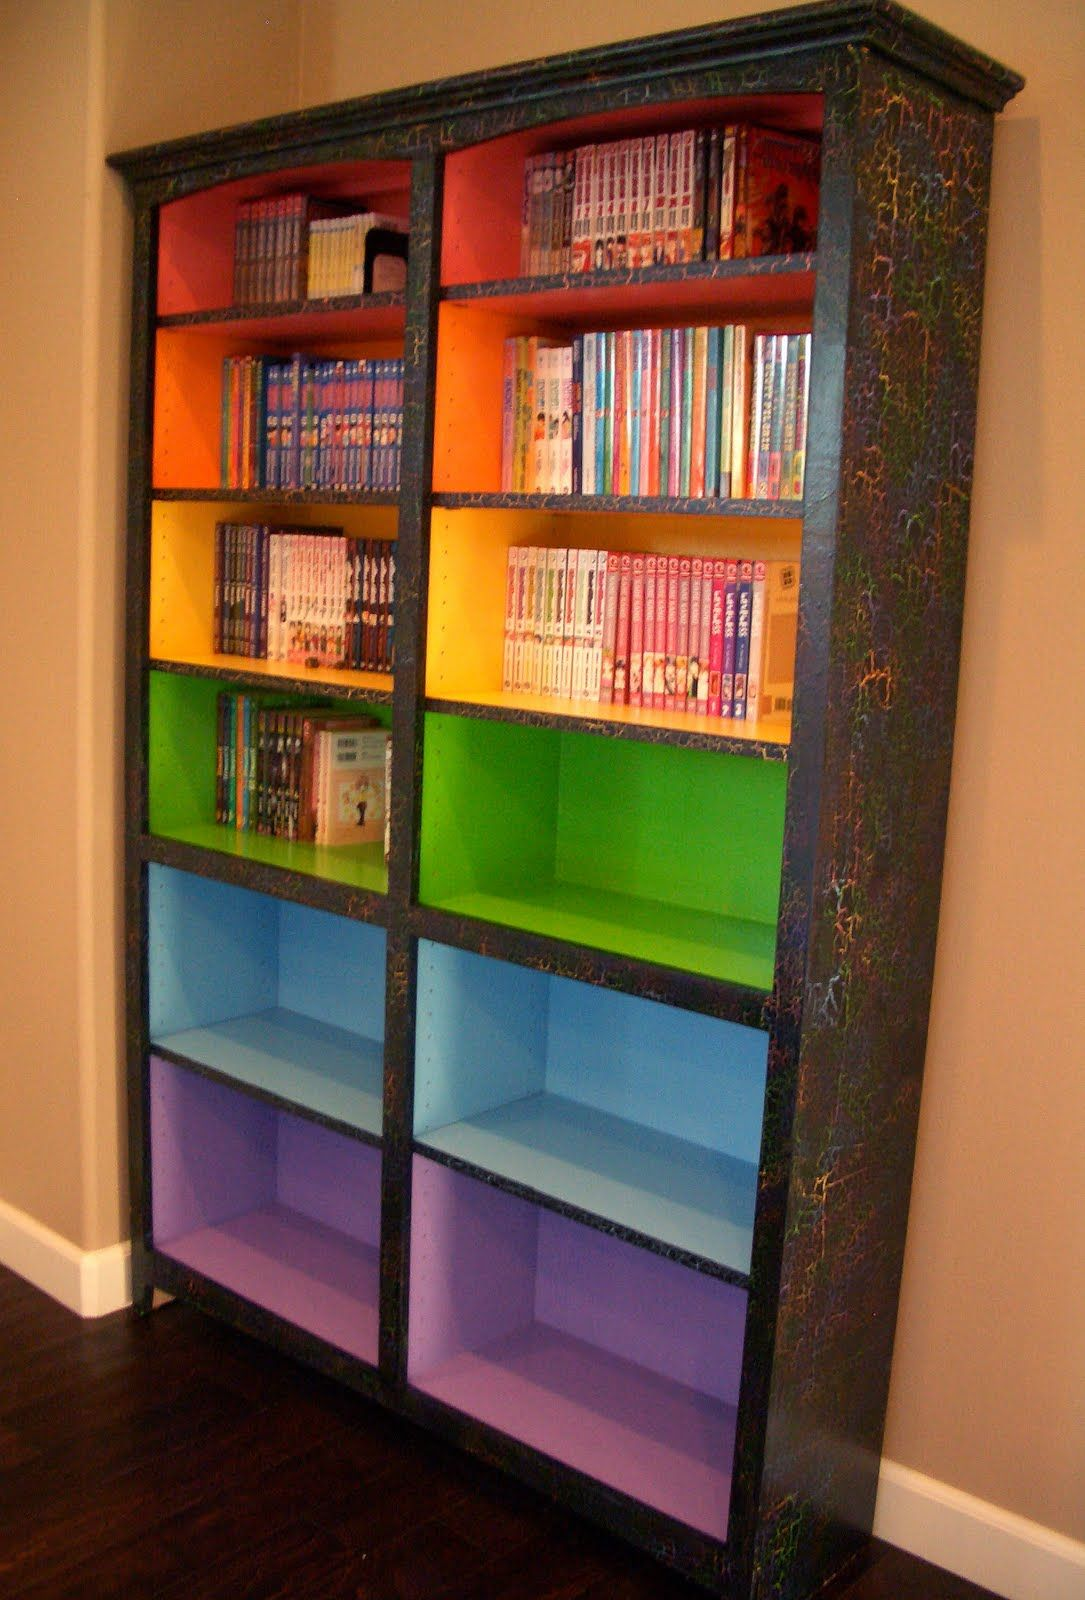 Pin By Azmin Jailani On To The Abode | Home, Bookshelves